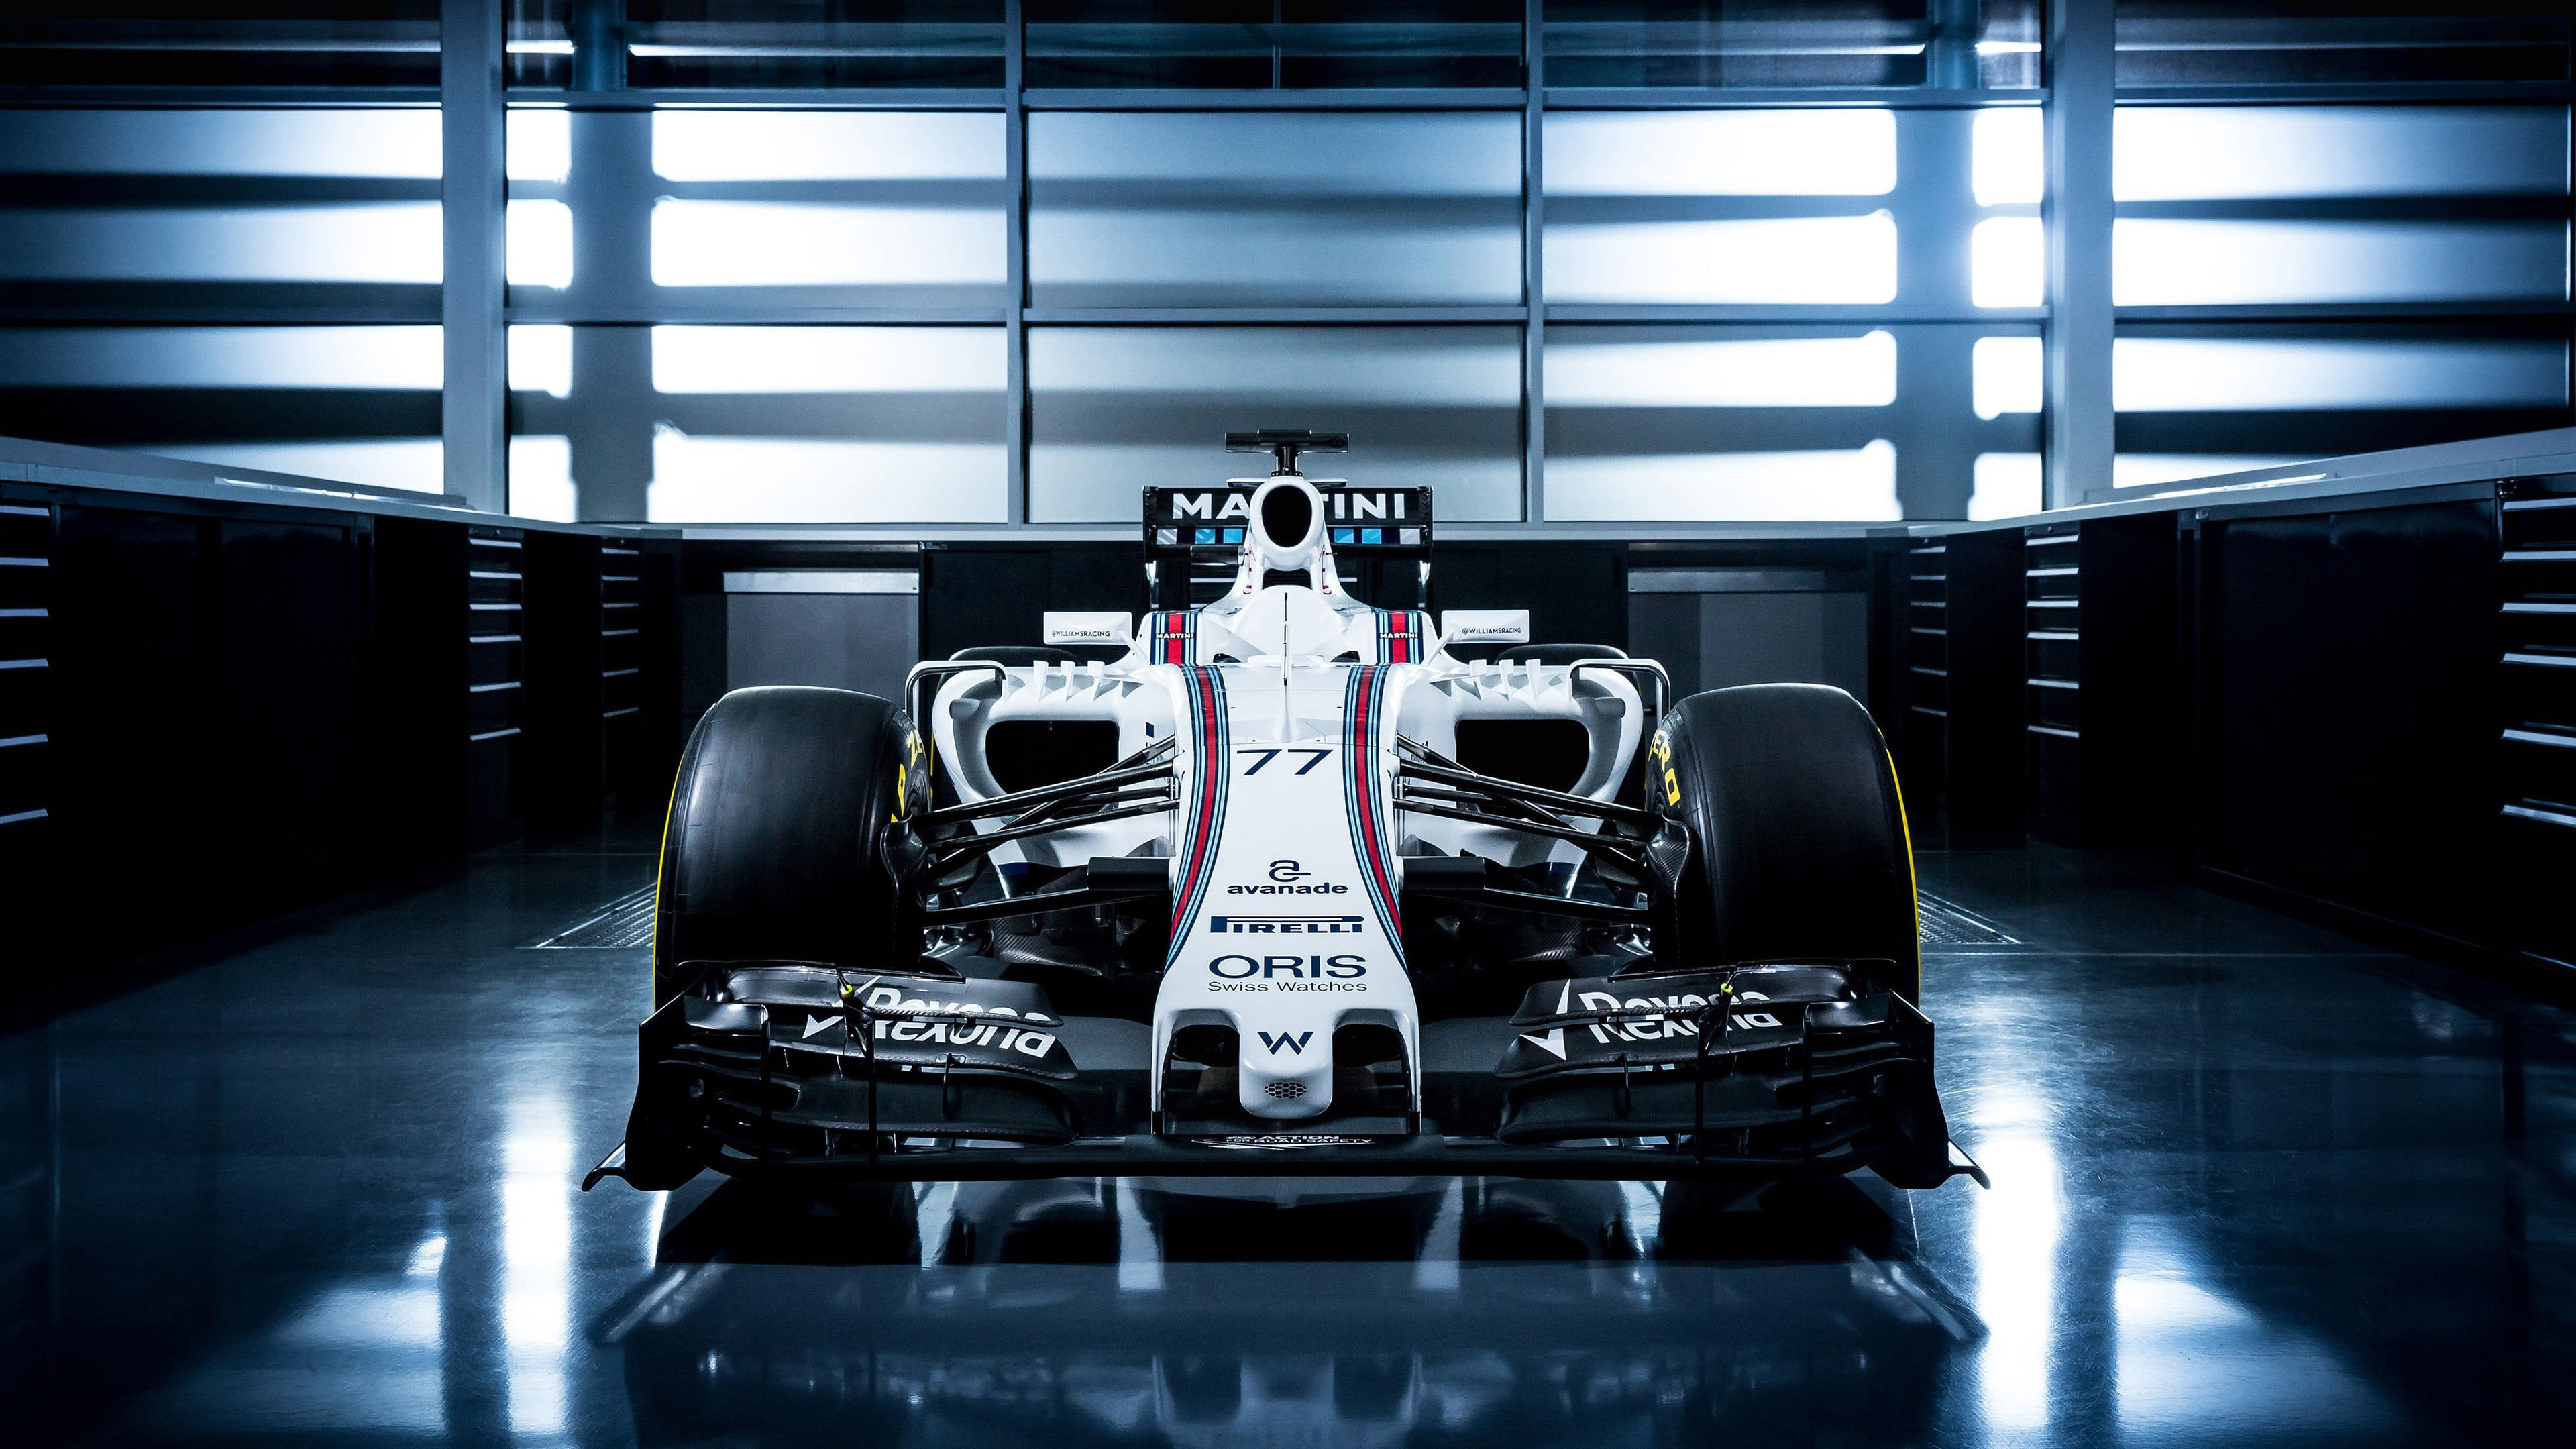 williams fw38 f1 fornt uhd 4k wallpaper